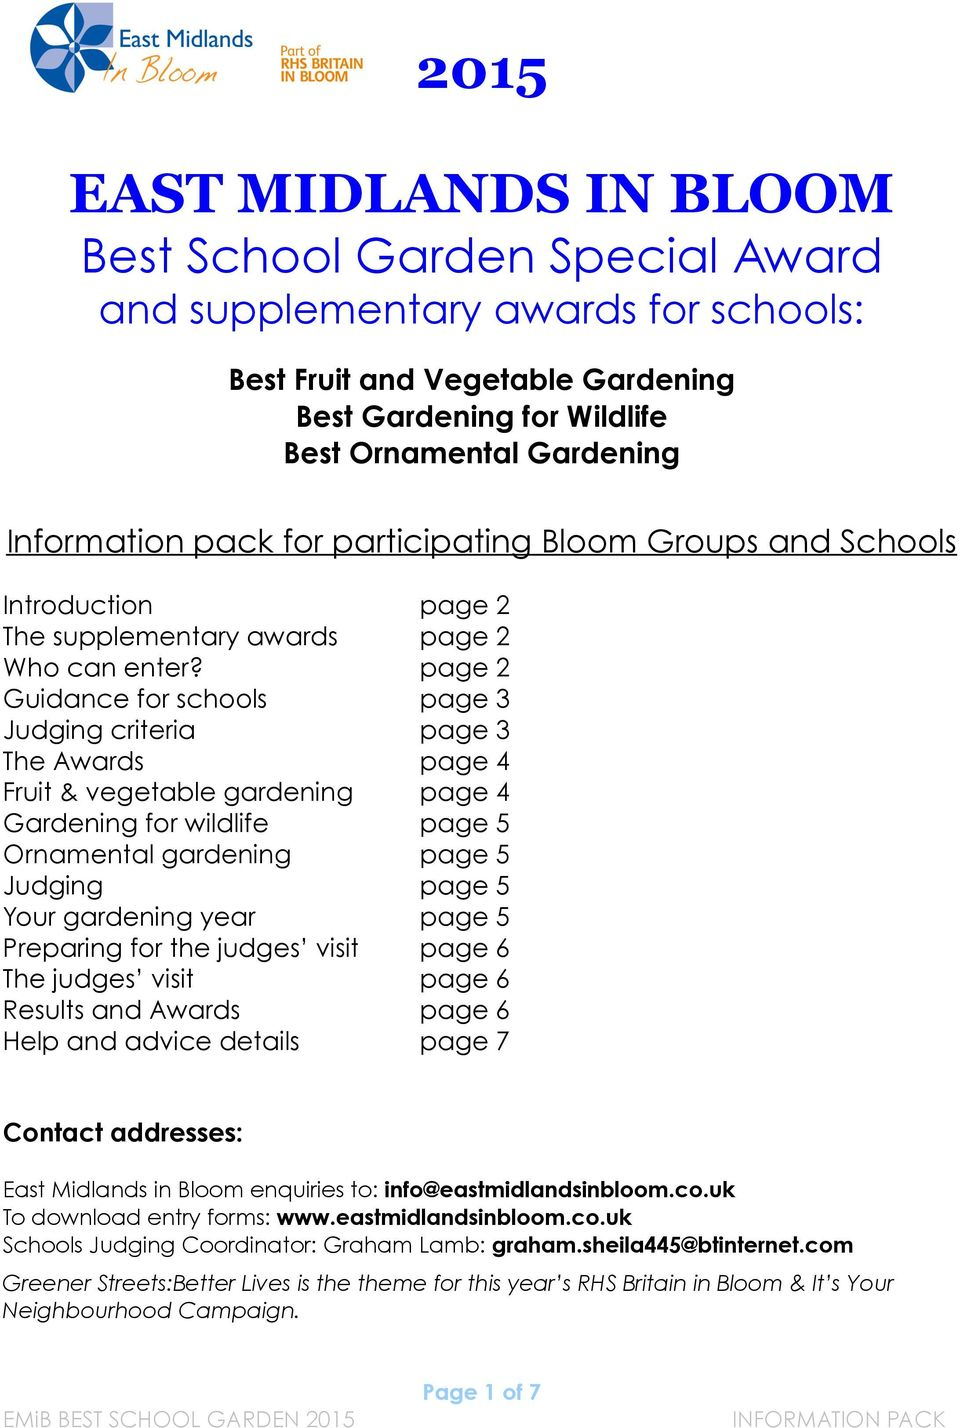 page 2 Guidance for schools page 3 Judging criteria page 3 The Awards page 4 Fruit & vegetable gardening page 4 Gardening for wildlife page 5 Ornamental gardening page 5 Judging page 5 Your gardening